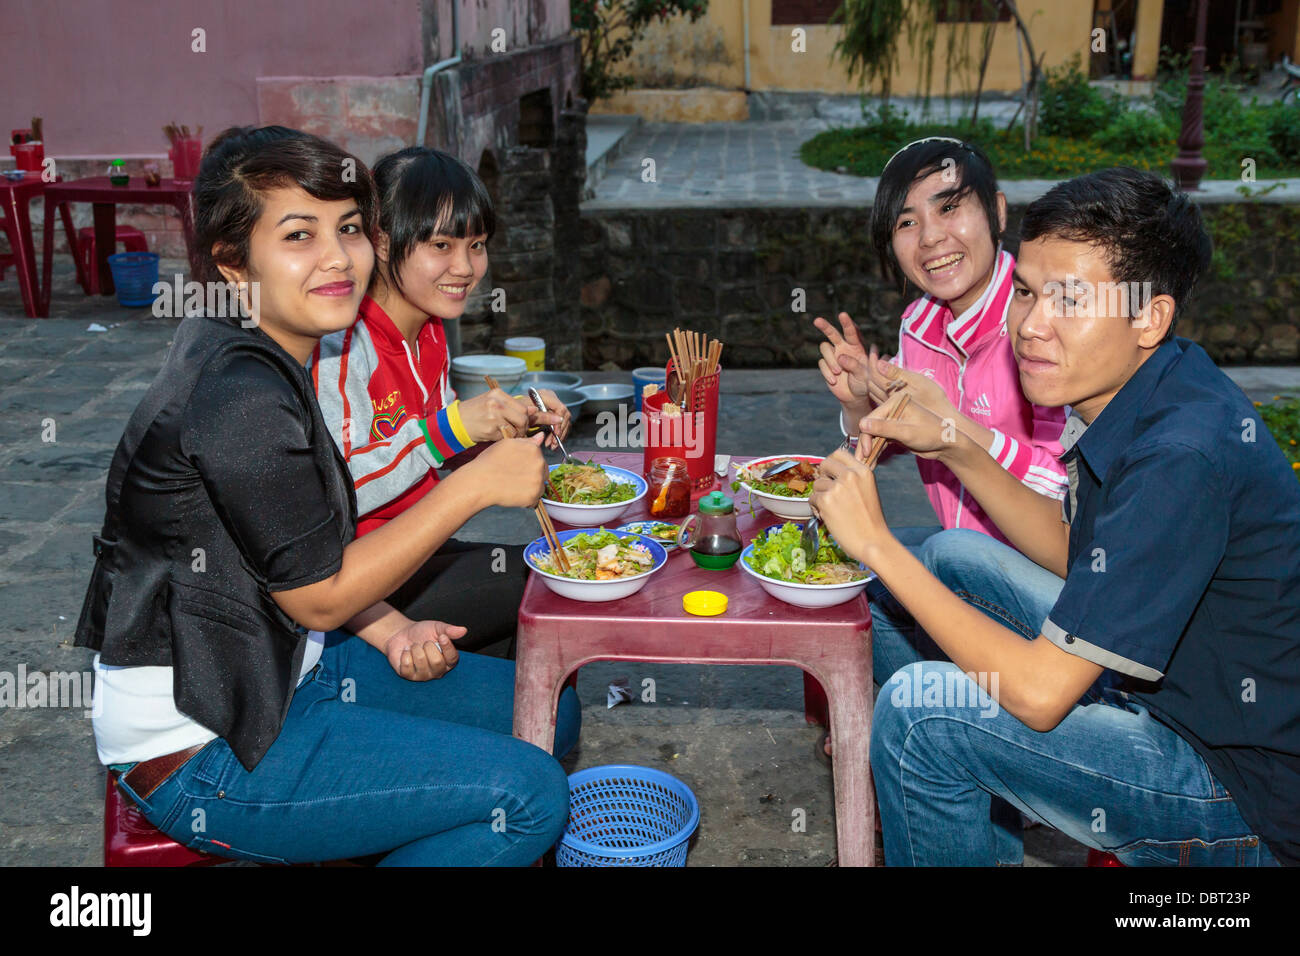 Four young people eating at an outdoor sidewalk cafe in Hoi An, Vietnam, Asia. - Stock Image